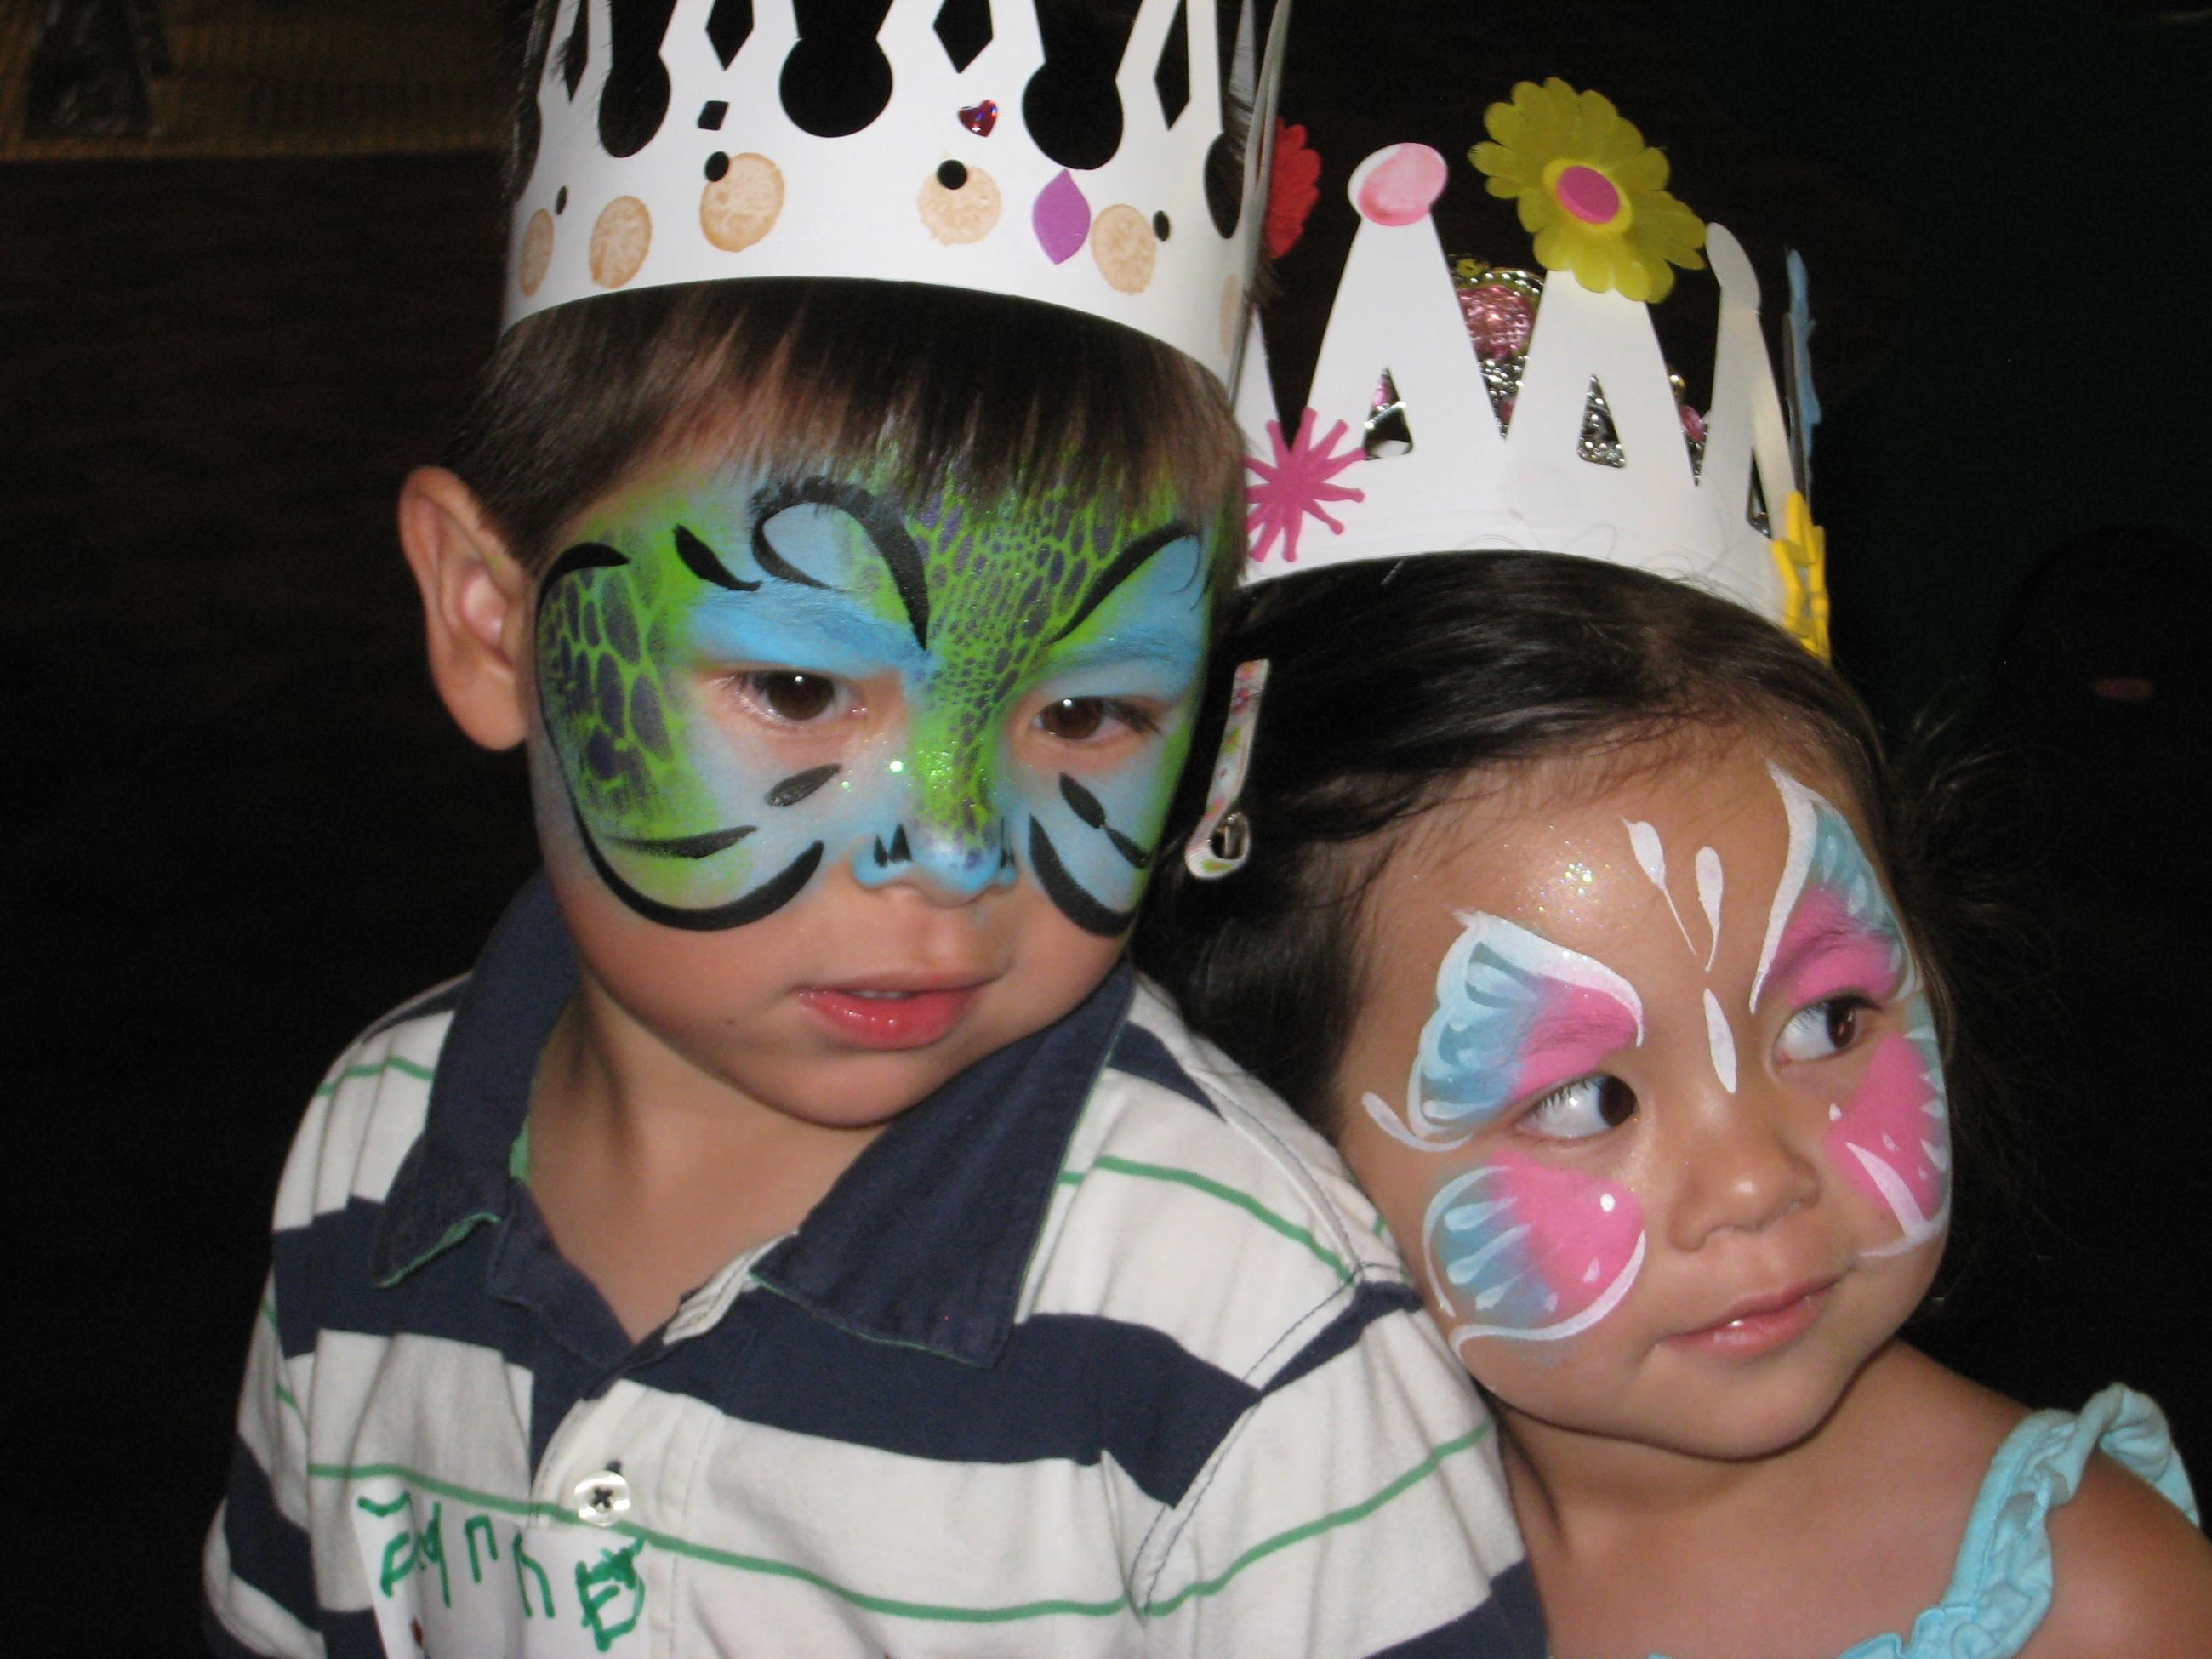 Two children with their faces painted wearing crowns